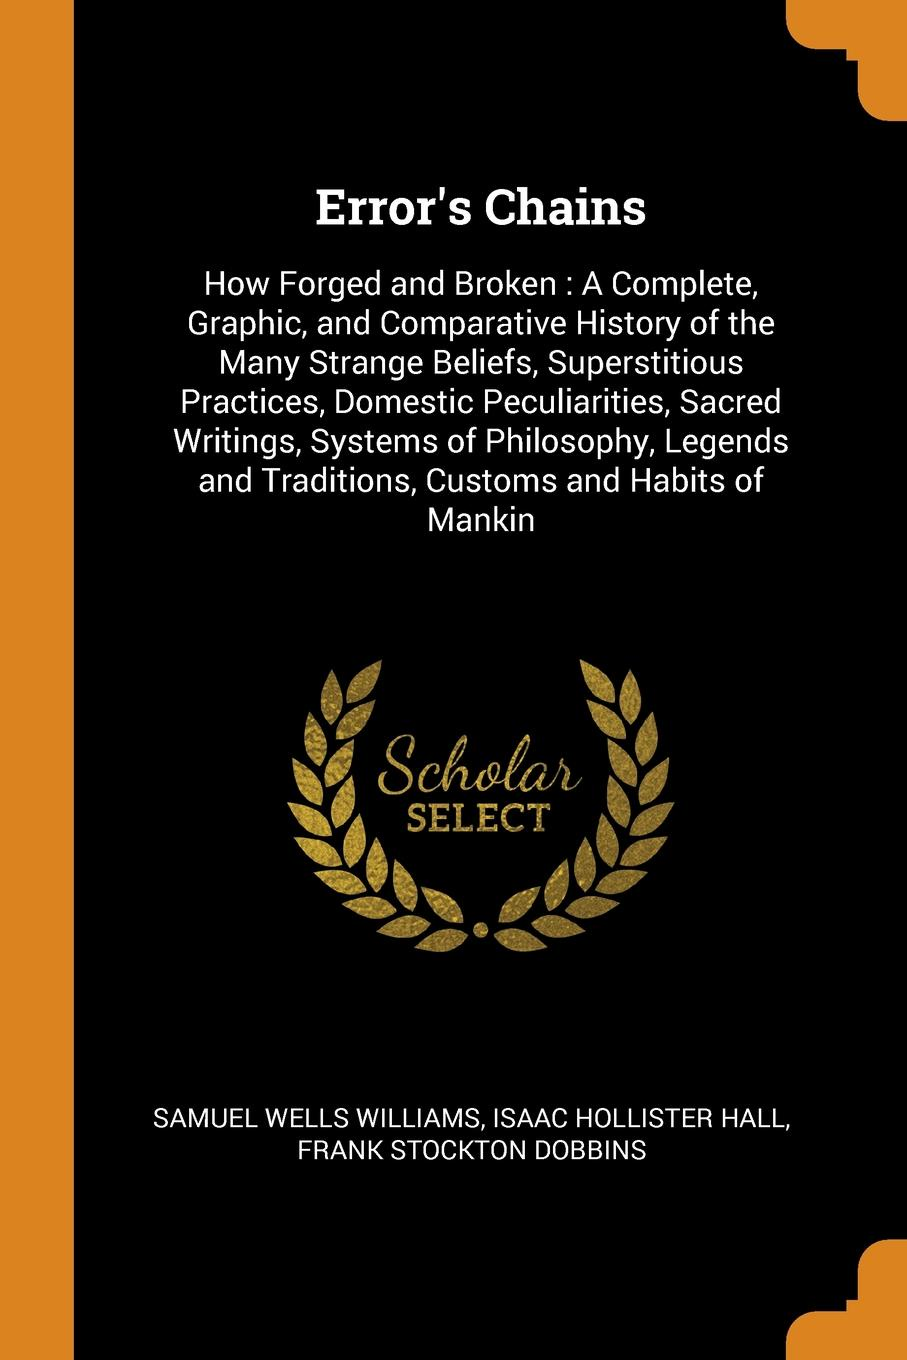 Samuel Wells Williams, Isaac Hollister Hall, Frank Stockton Dobbins Error's Chains. How Forged and Broken : A Complete, Graphic, and Comparative History of the Many Strange Beliefs, Superstitious Practices, Domestic Peculiarities, Sacred Writings, Systems of Philosophy, Legends and Traditions, Customs and Habits o... john glyde the norfolk garland a collection of the superstitious beliefs and practices proverbs curious customs ballads and songs of the people of norfolk or peculiarities of norfolk celebrities